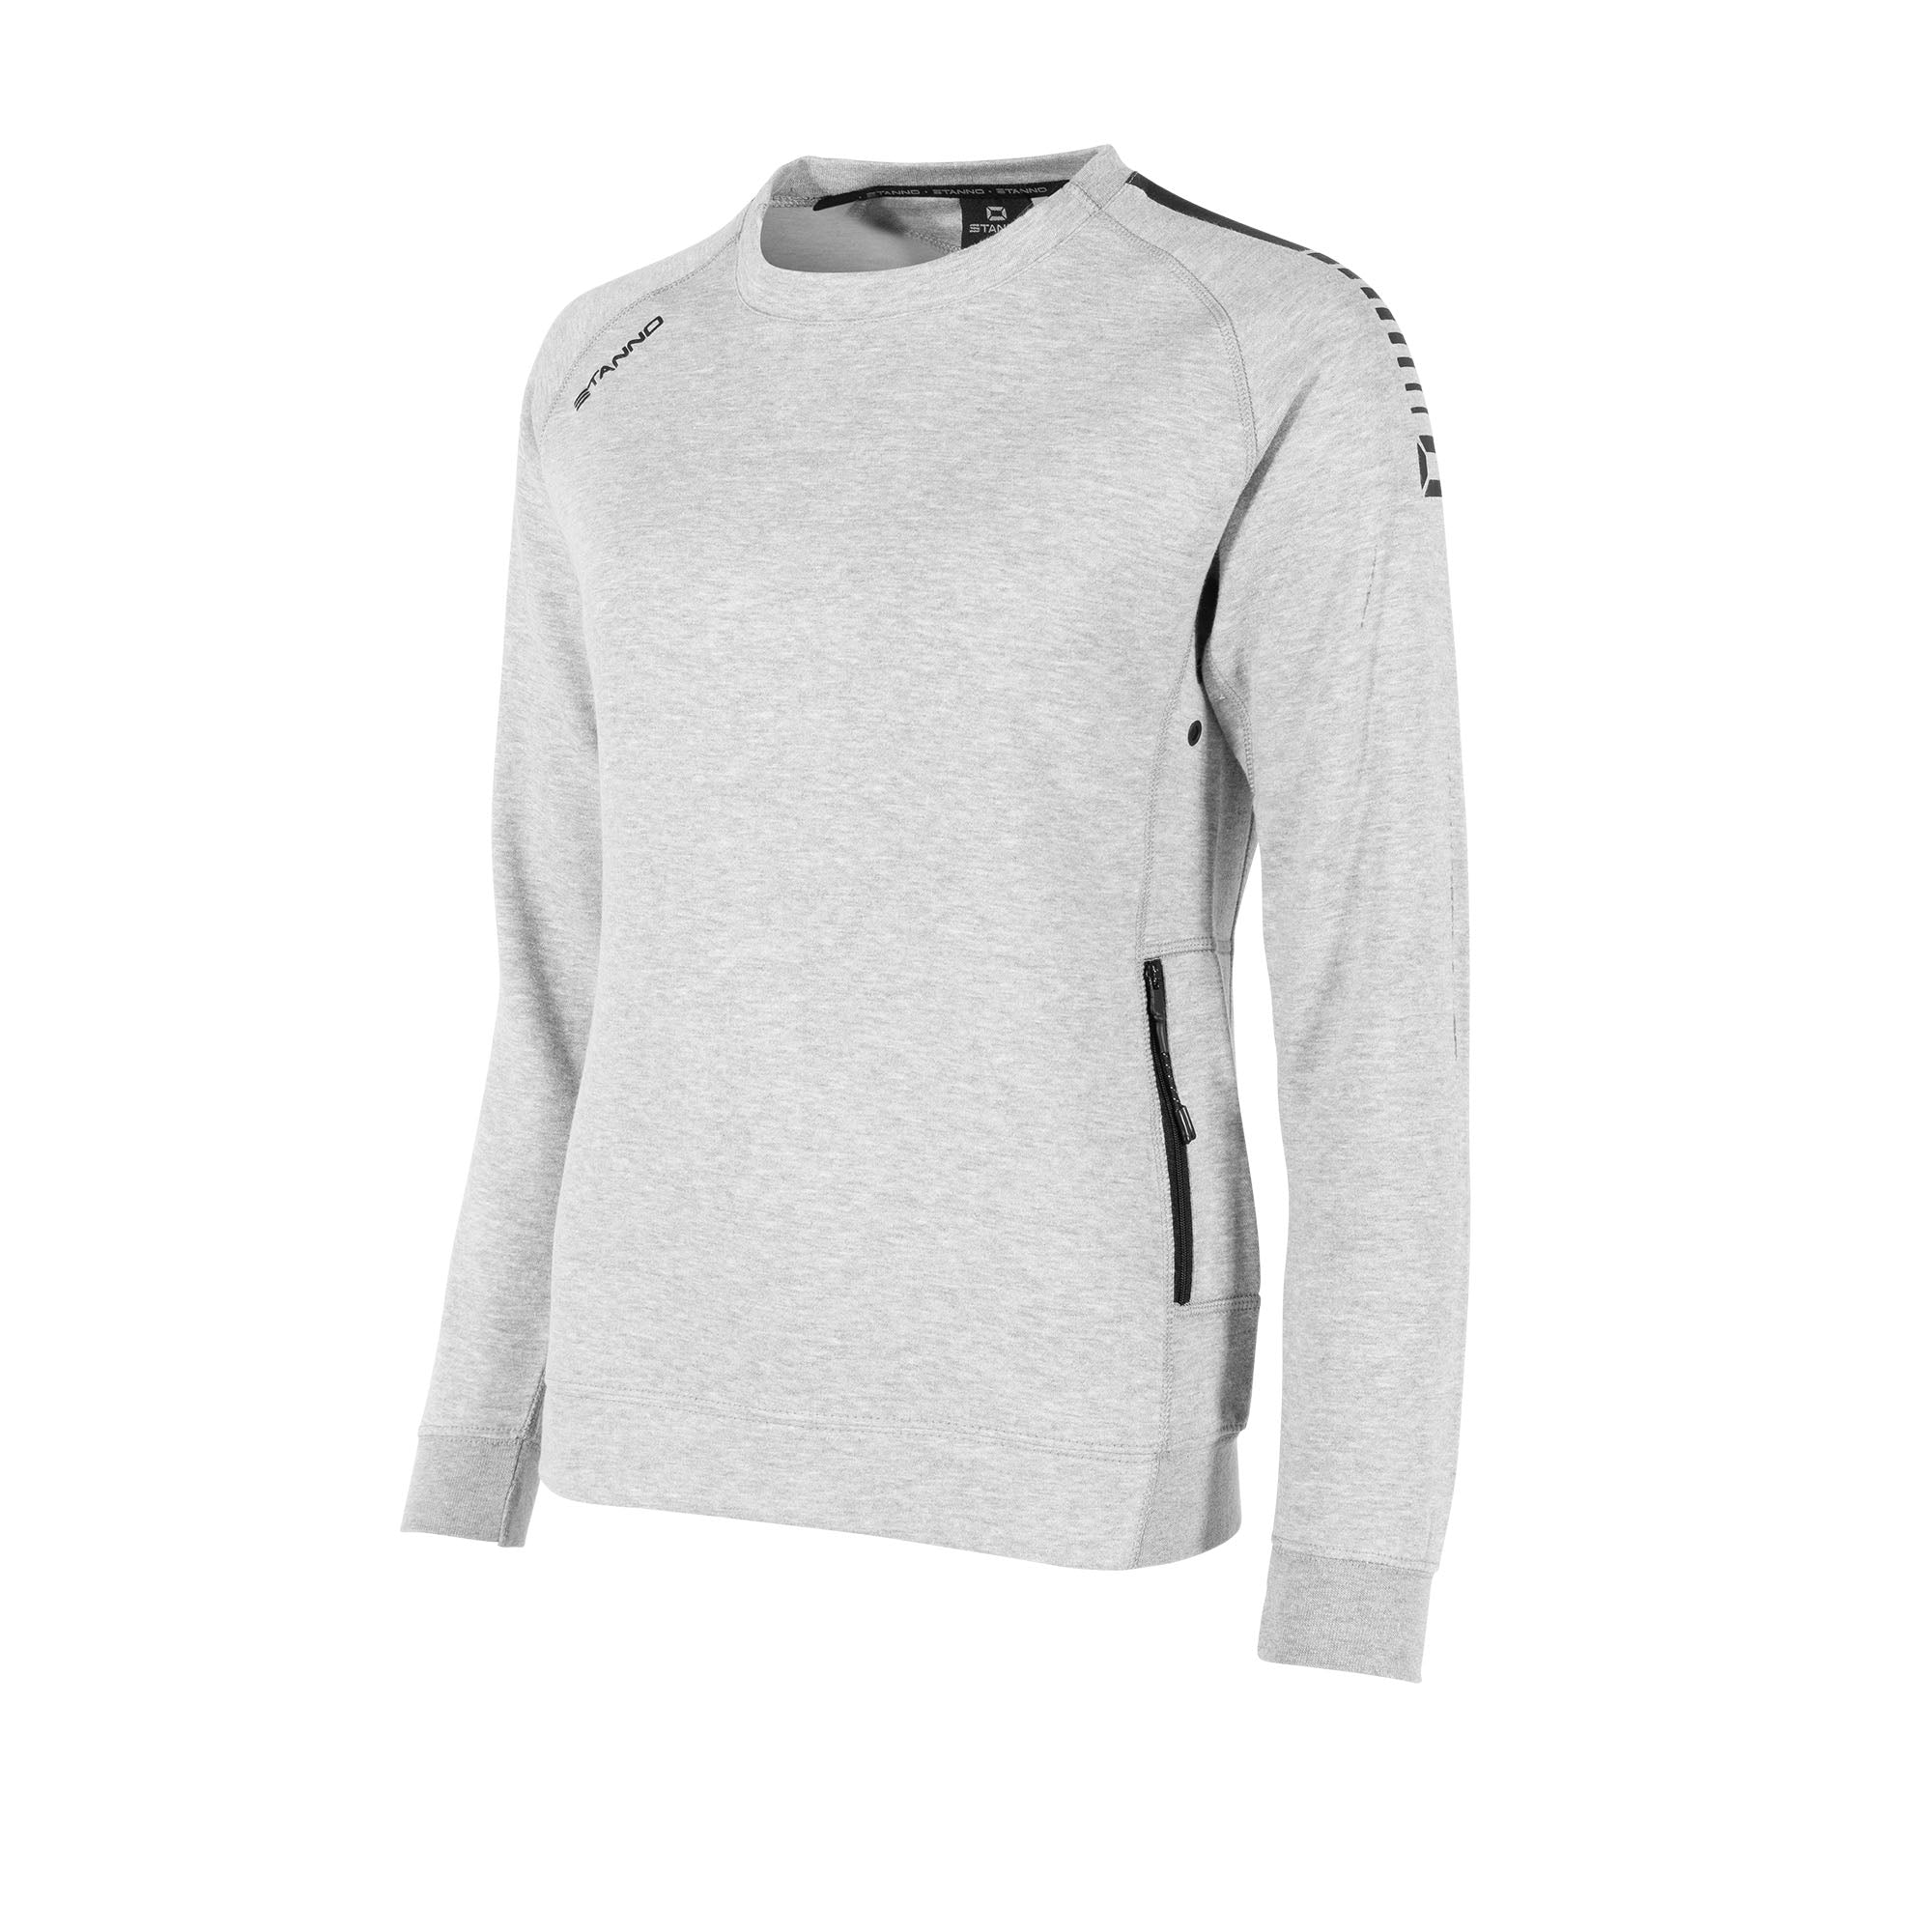 Front view of Stanno Ease crewneck ladies in grey with raglan sleeve. Printed black logo on shoulder